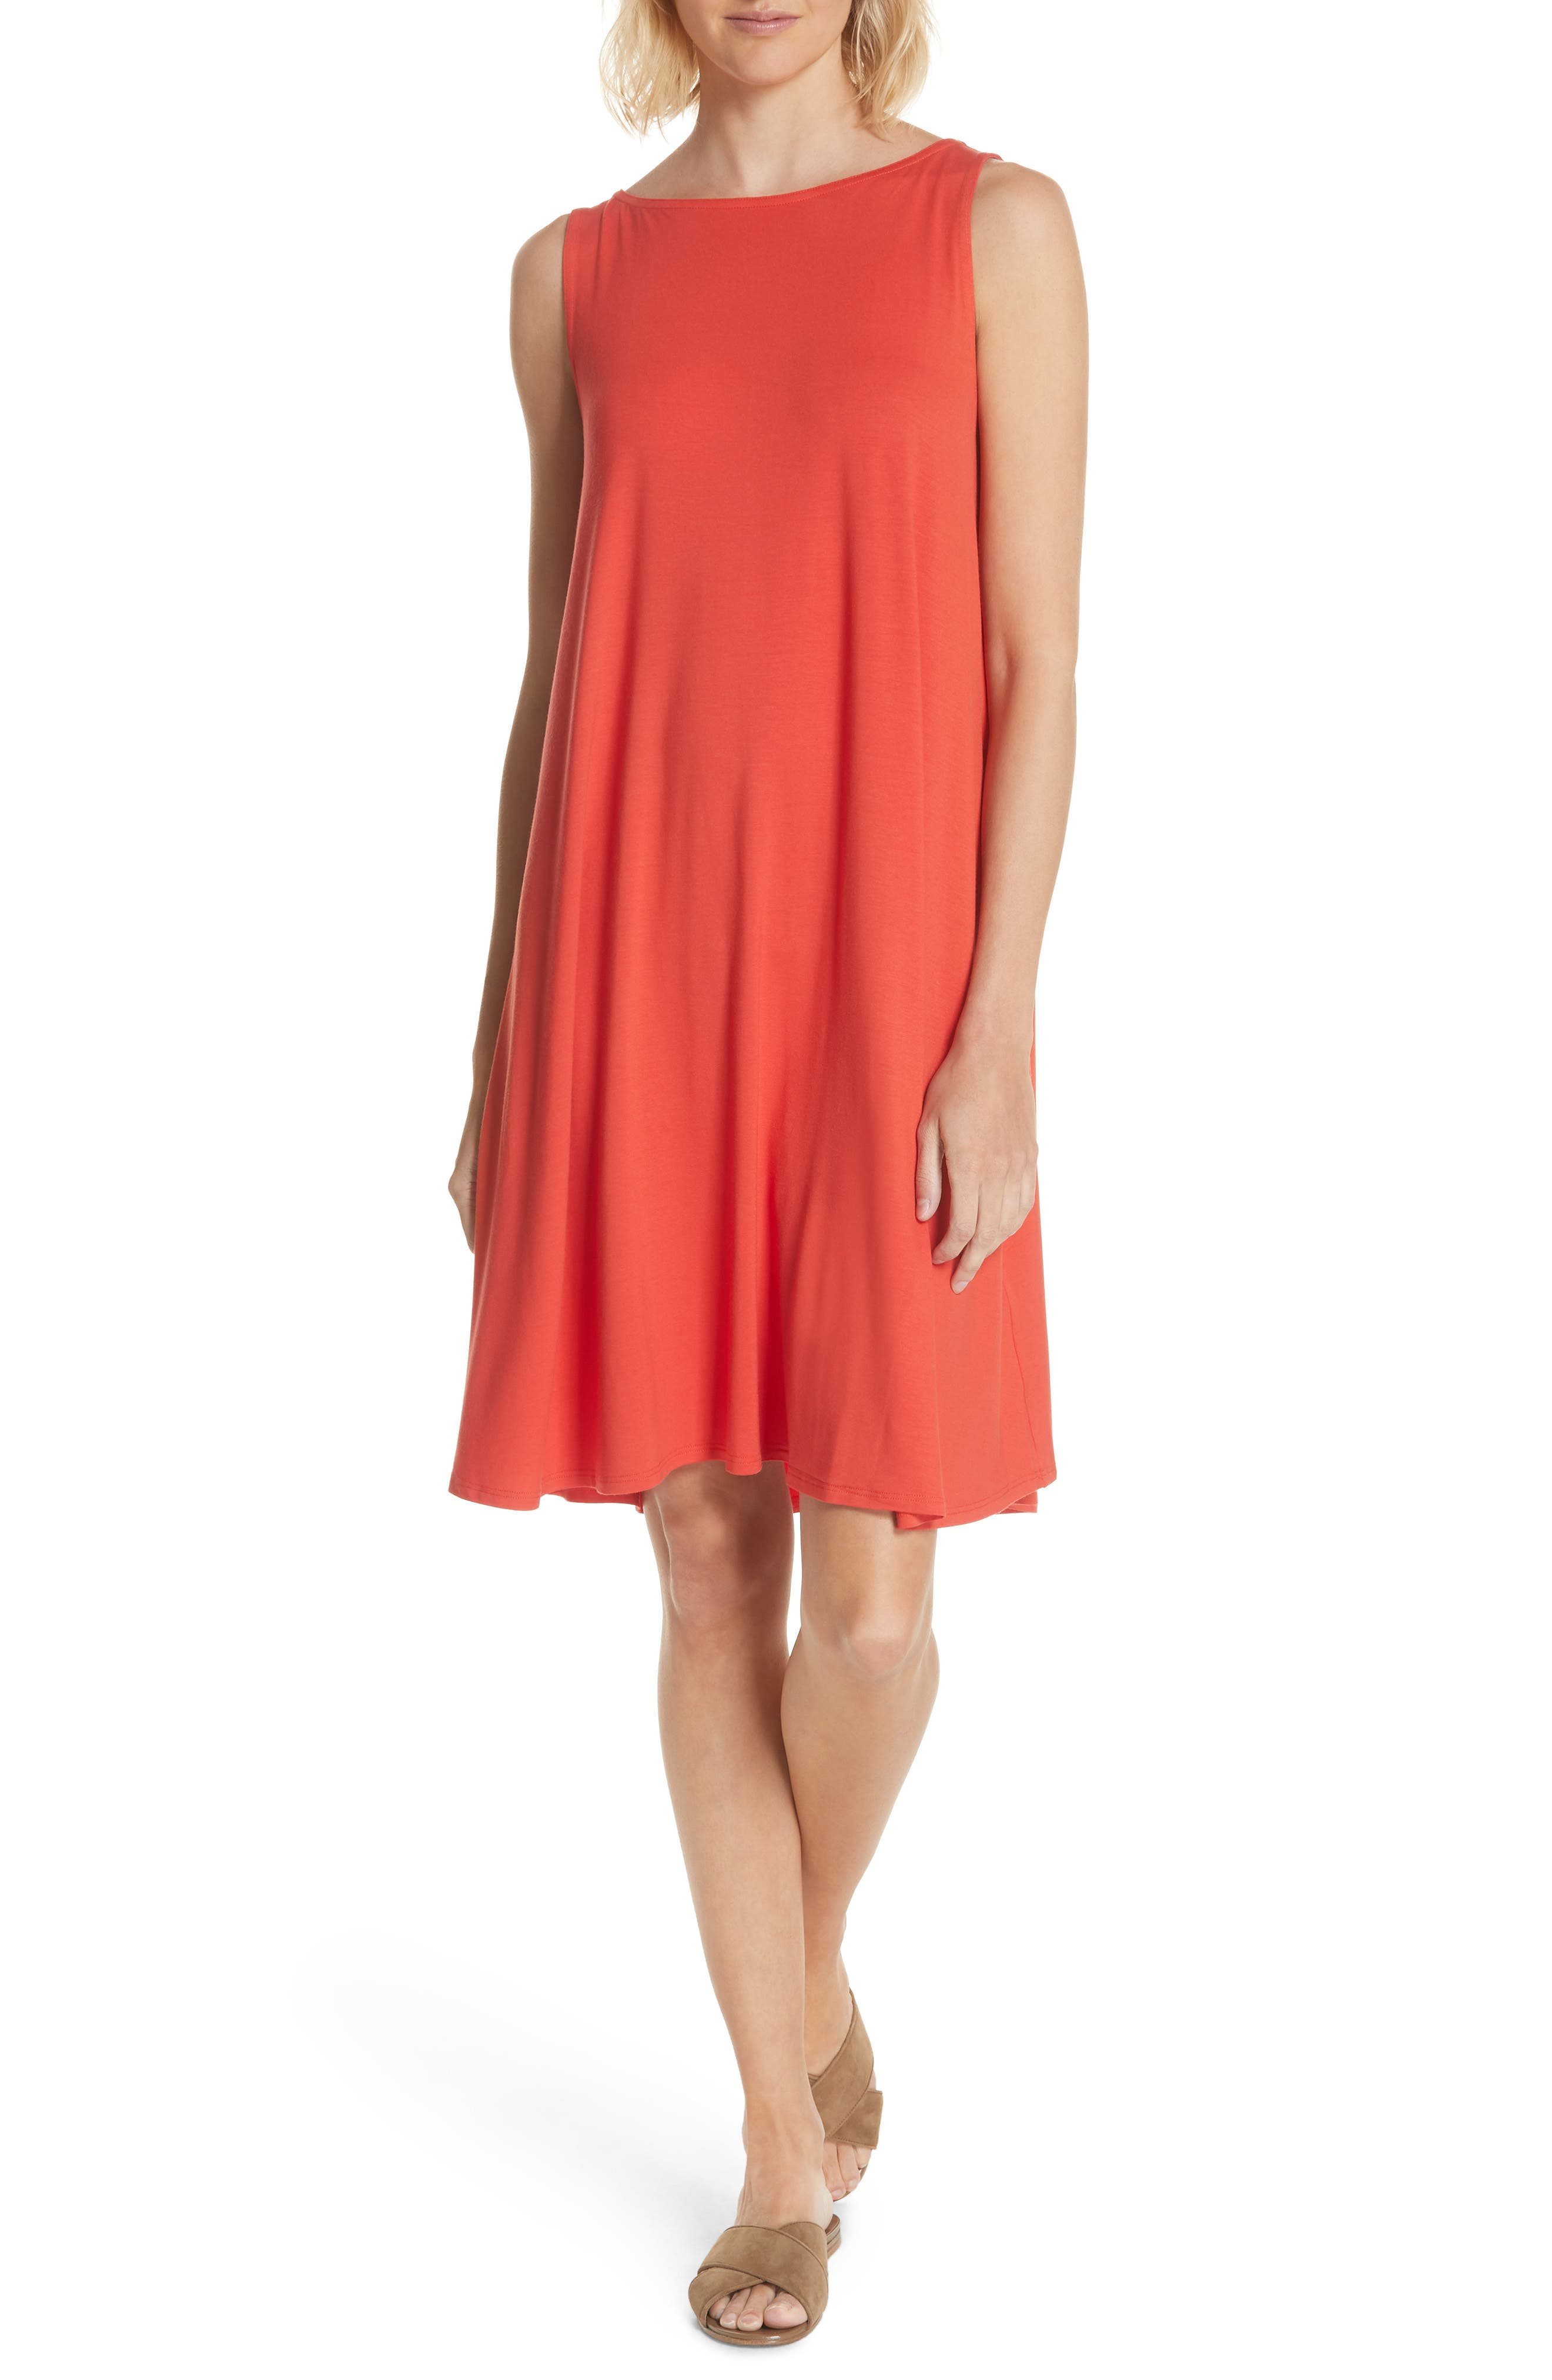 Alternate Image 1 Selected - Eileen Fisher Lightweight Jersey Shift Dress (Regular & Petite) (Nordstrom Exclusive)